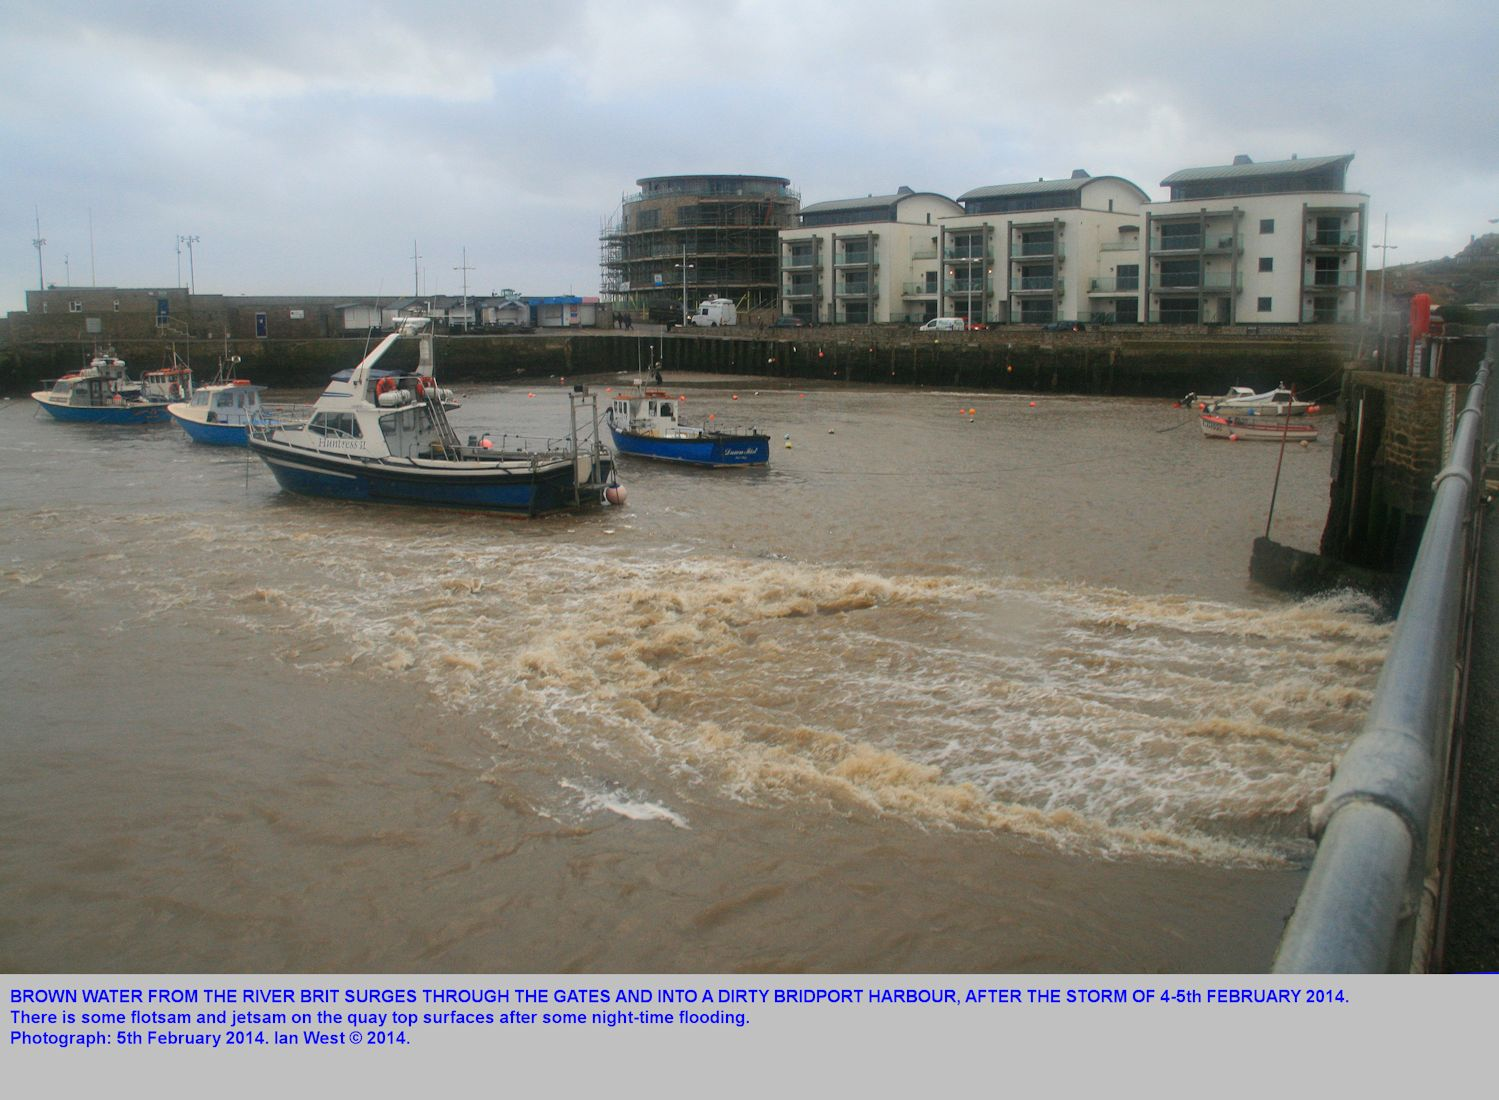 Discharge of brown, muddy water from the River Brit, into Bridport Harbour, West Bay, following the storm in the night of the 4 and 5th of February, 2014.